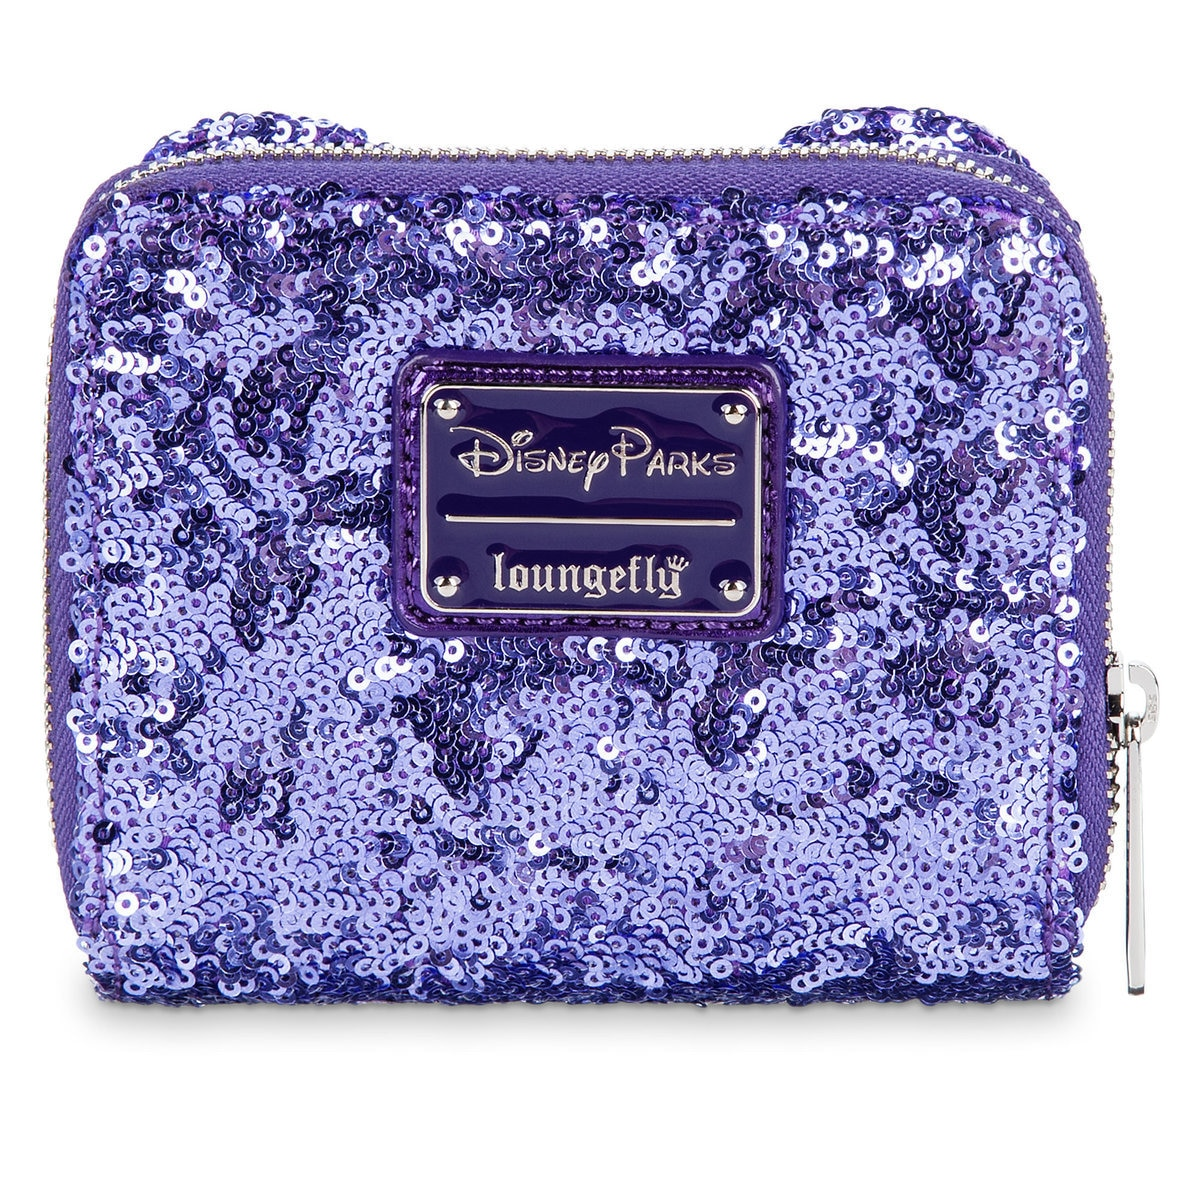 59f128e8b18 Product Image of Minnie Mouse Potion Purple Sequined Wallet by Loungefly   1